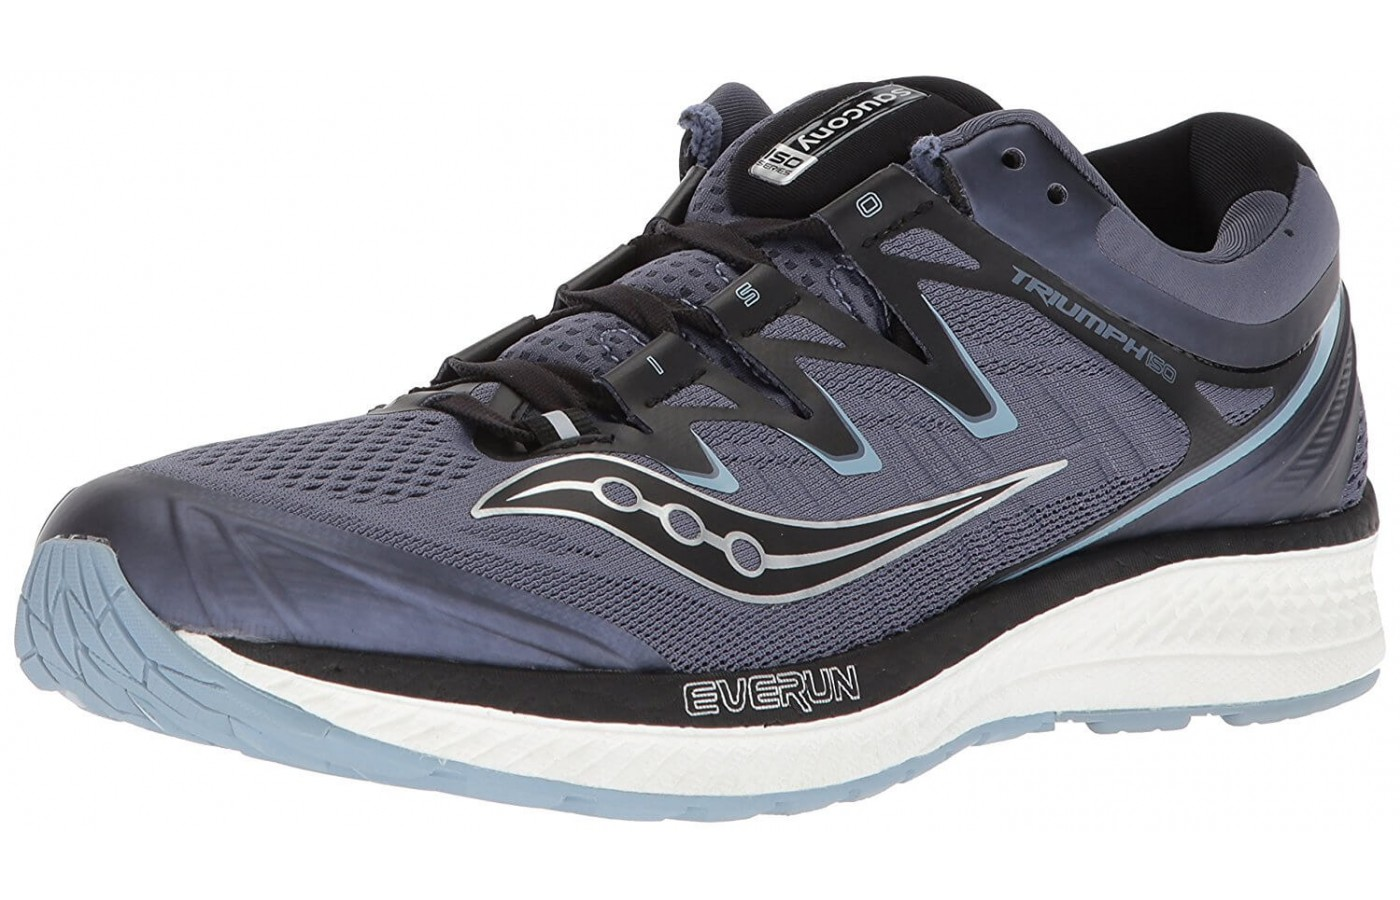 This is a nuetral road running shoe that is best for long runs and races.